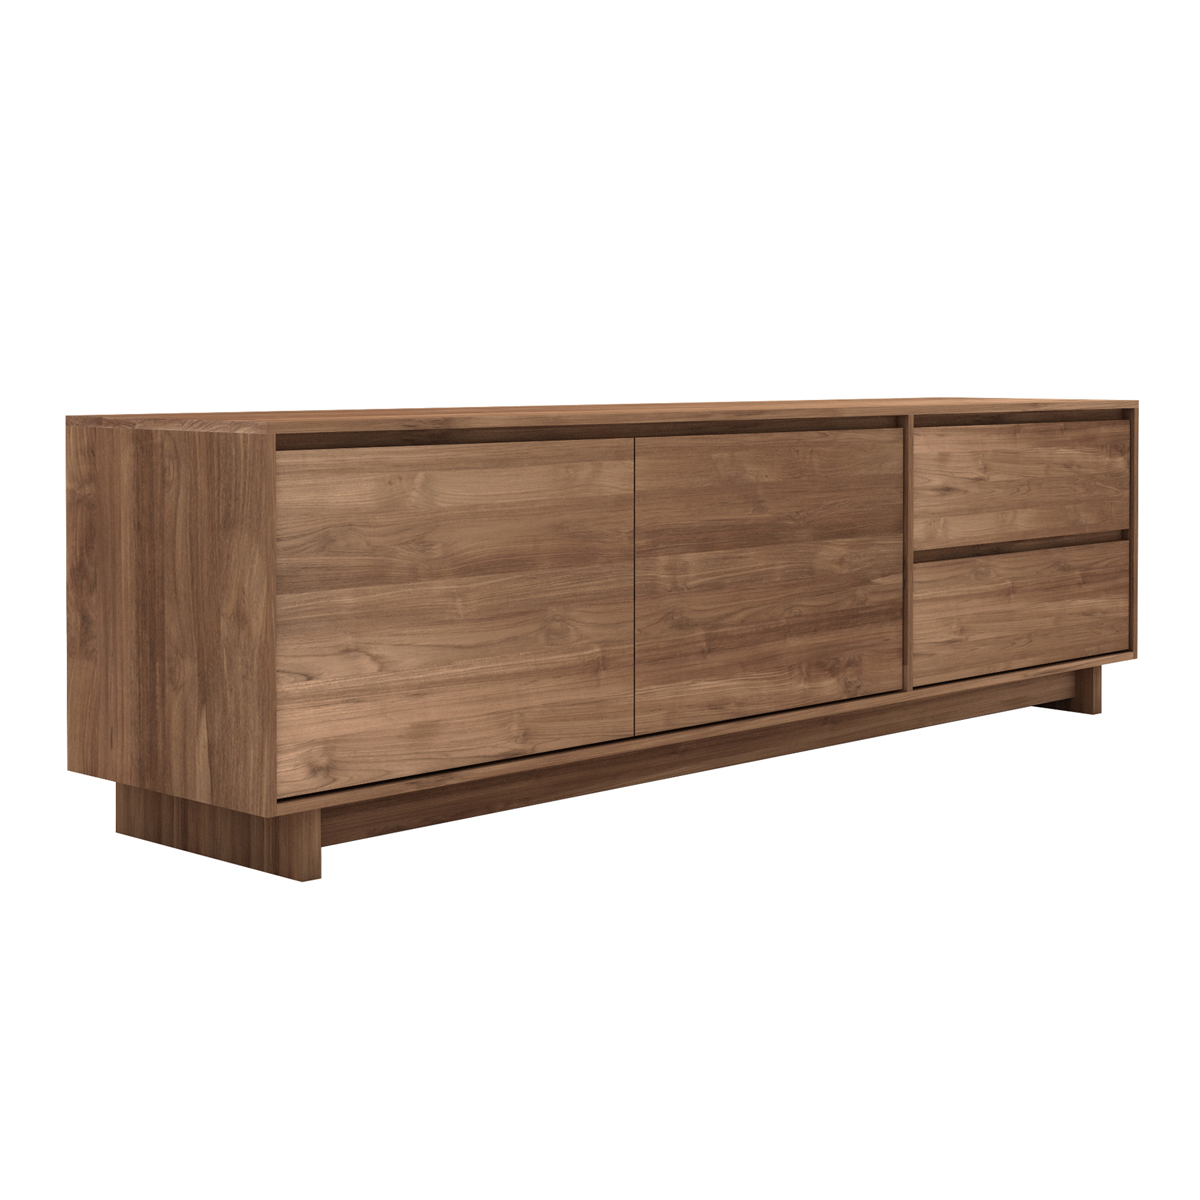 teak tv board wave modernes wohnen wohnstil gooran gmbh. Black Bedroom Furniture Sets. Home Design Ideas